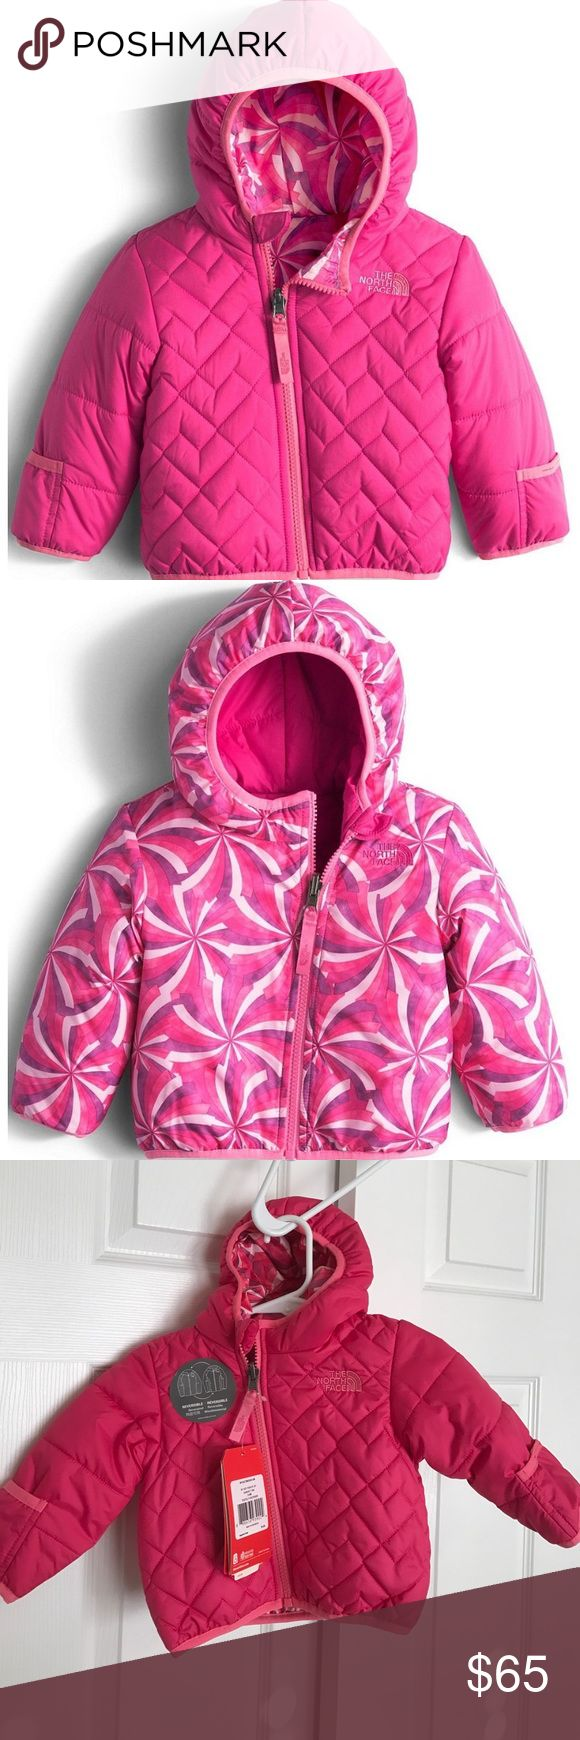 Baby Girl - 3-6 Months North Face Coat BNWT - stock photos are closer to actual color - fully reversible The North Face Jackets & Coats Puffers